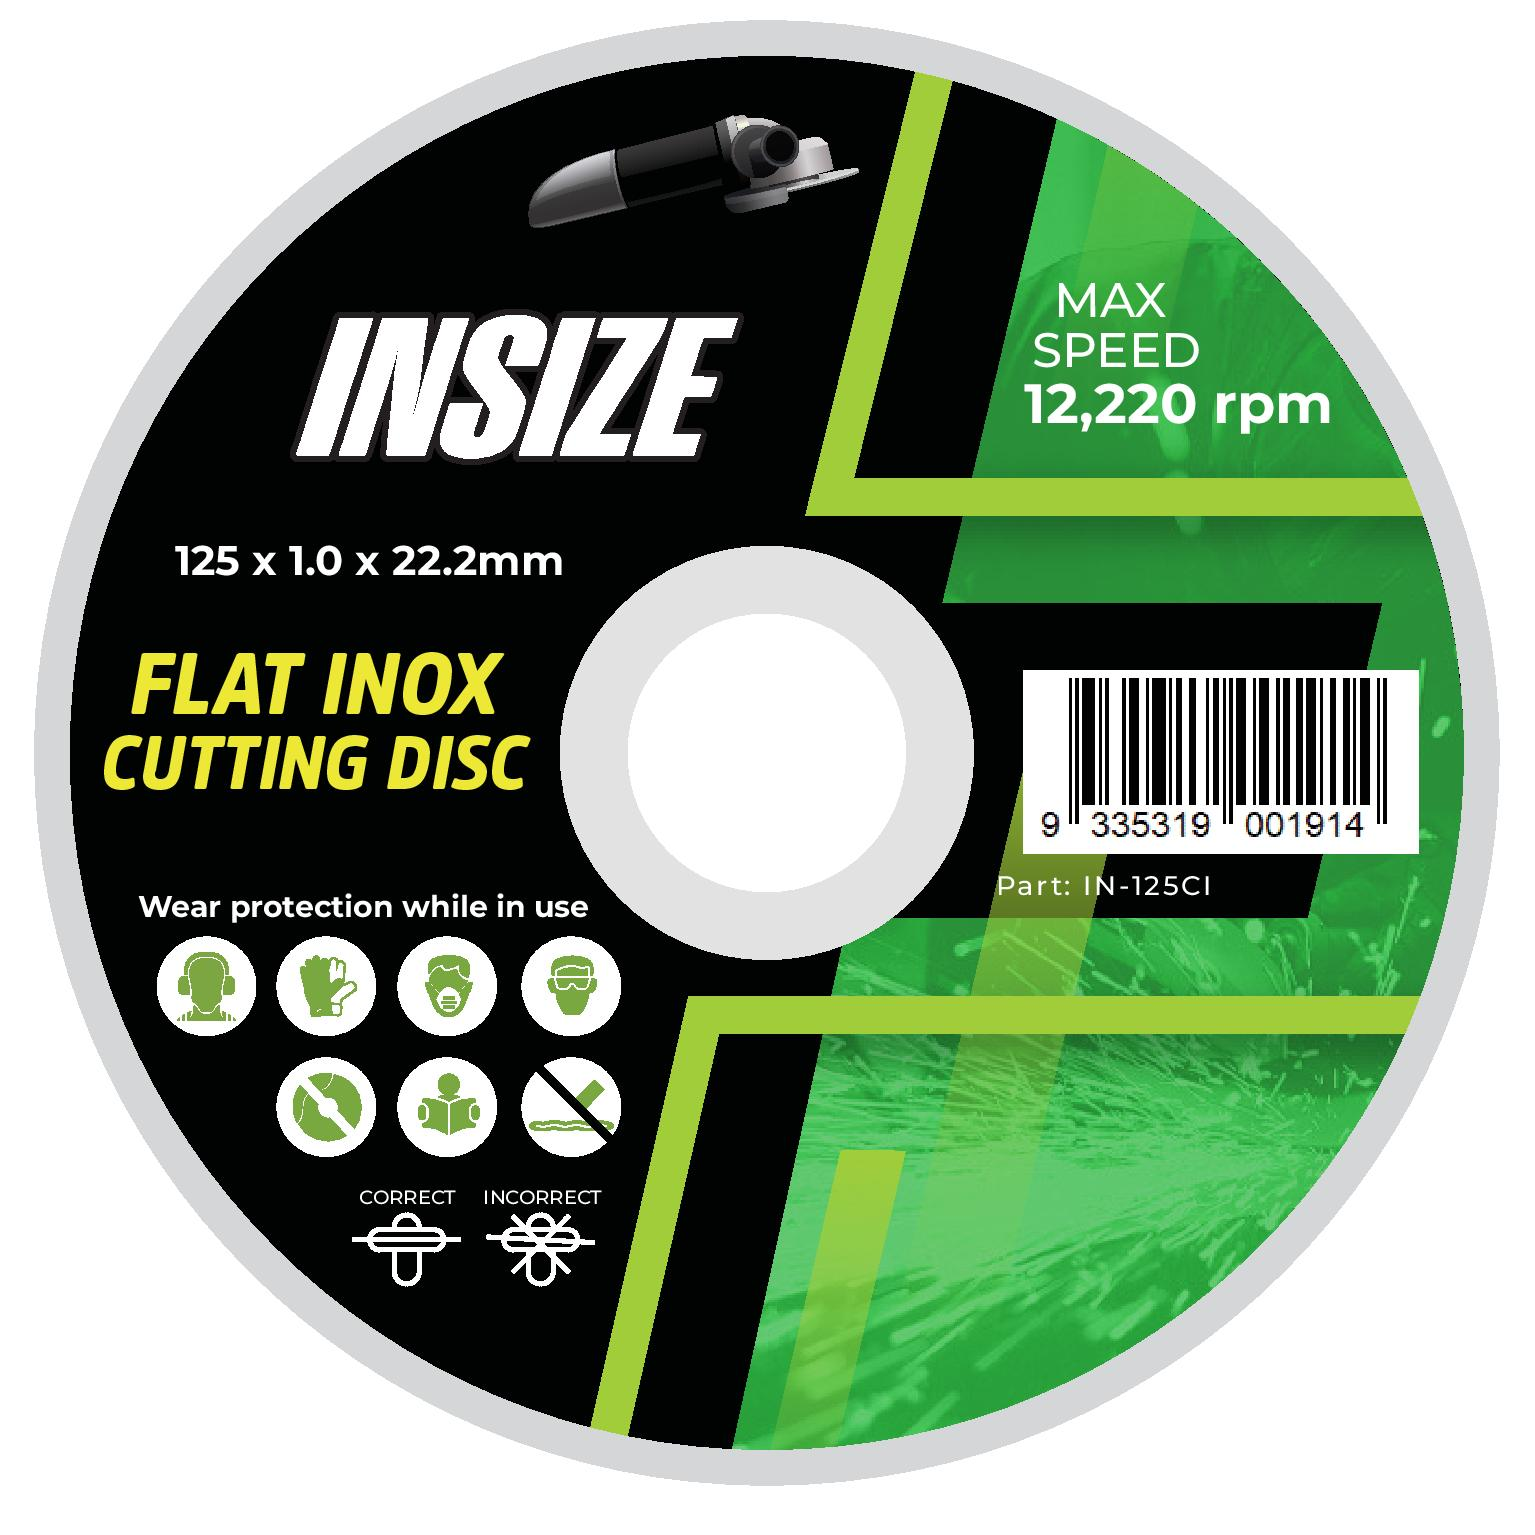 IN-125CI 125 x 1.0 x 22.2mm Flat Inox Cutting Disc